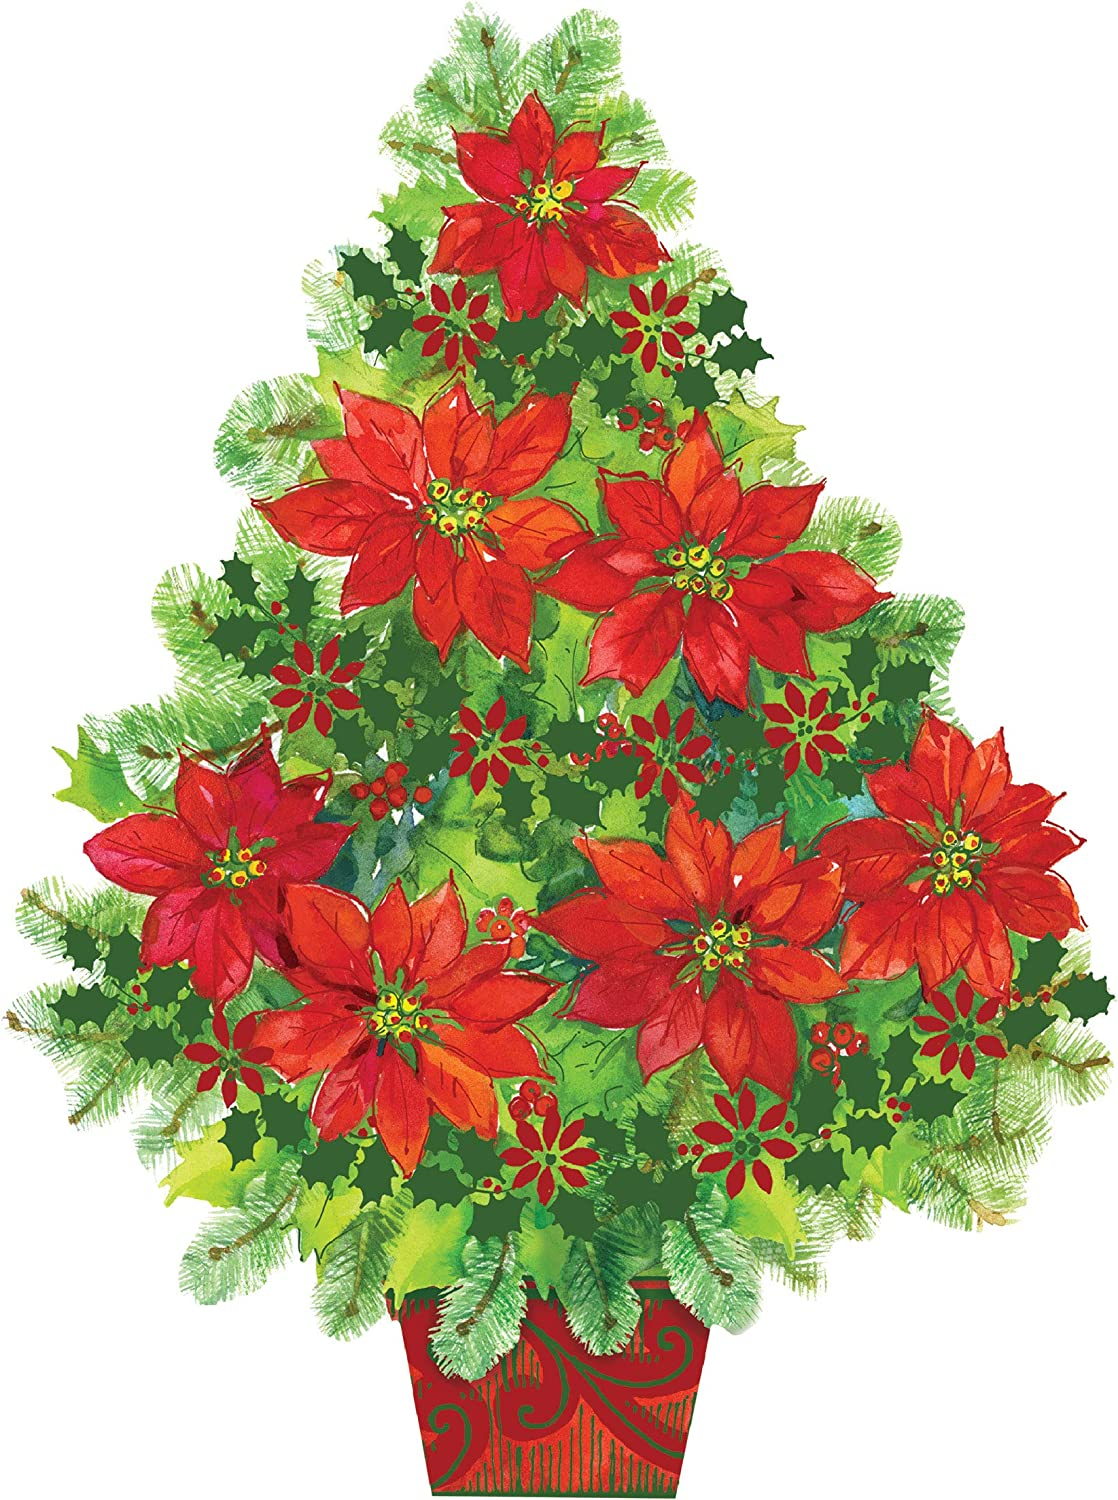 Studio M Poinsettia Tree Winter Christmas Door Décor Decorative Front Door Sign with Colorful Ribbon Hanger, Durable Fade Resistant PVC, Made in The USA, 18 x 23 Inches